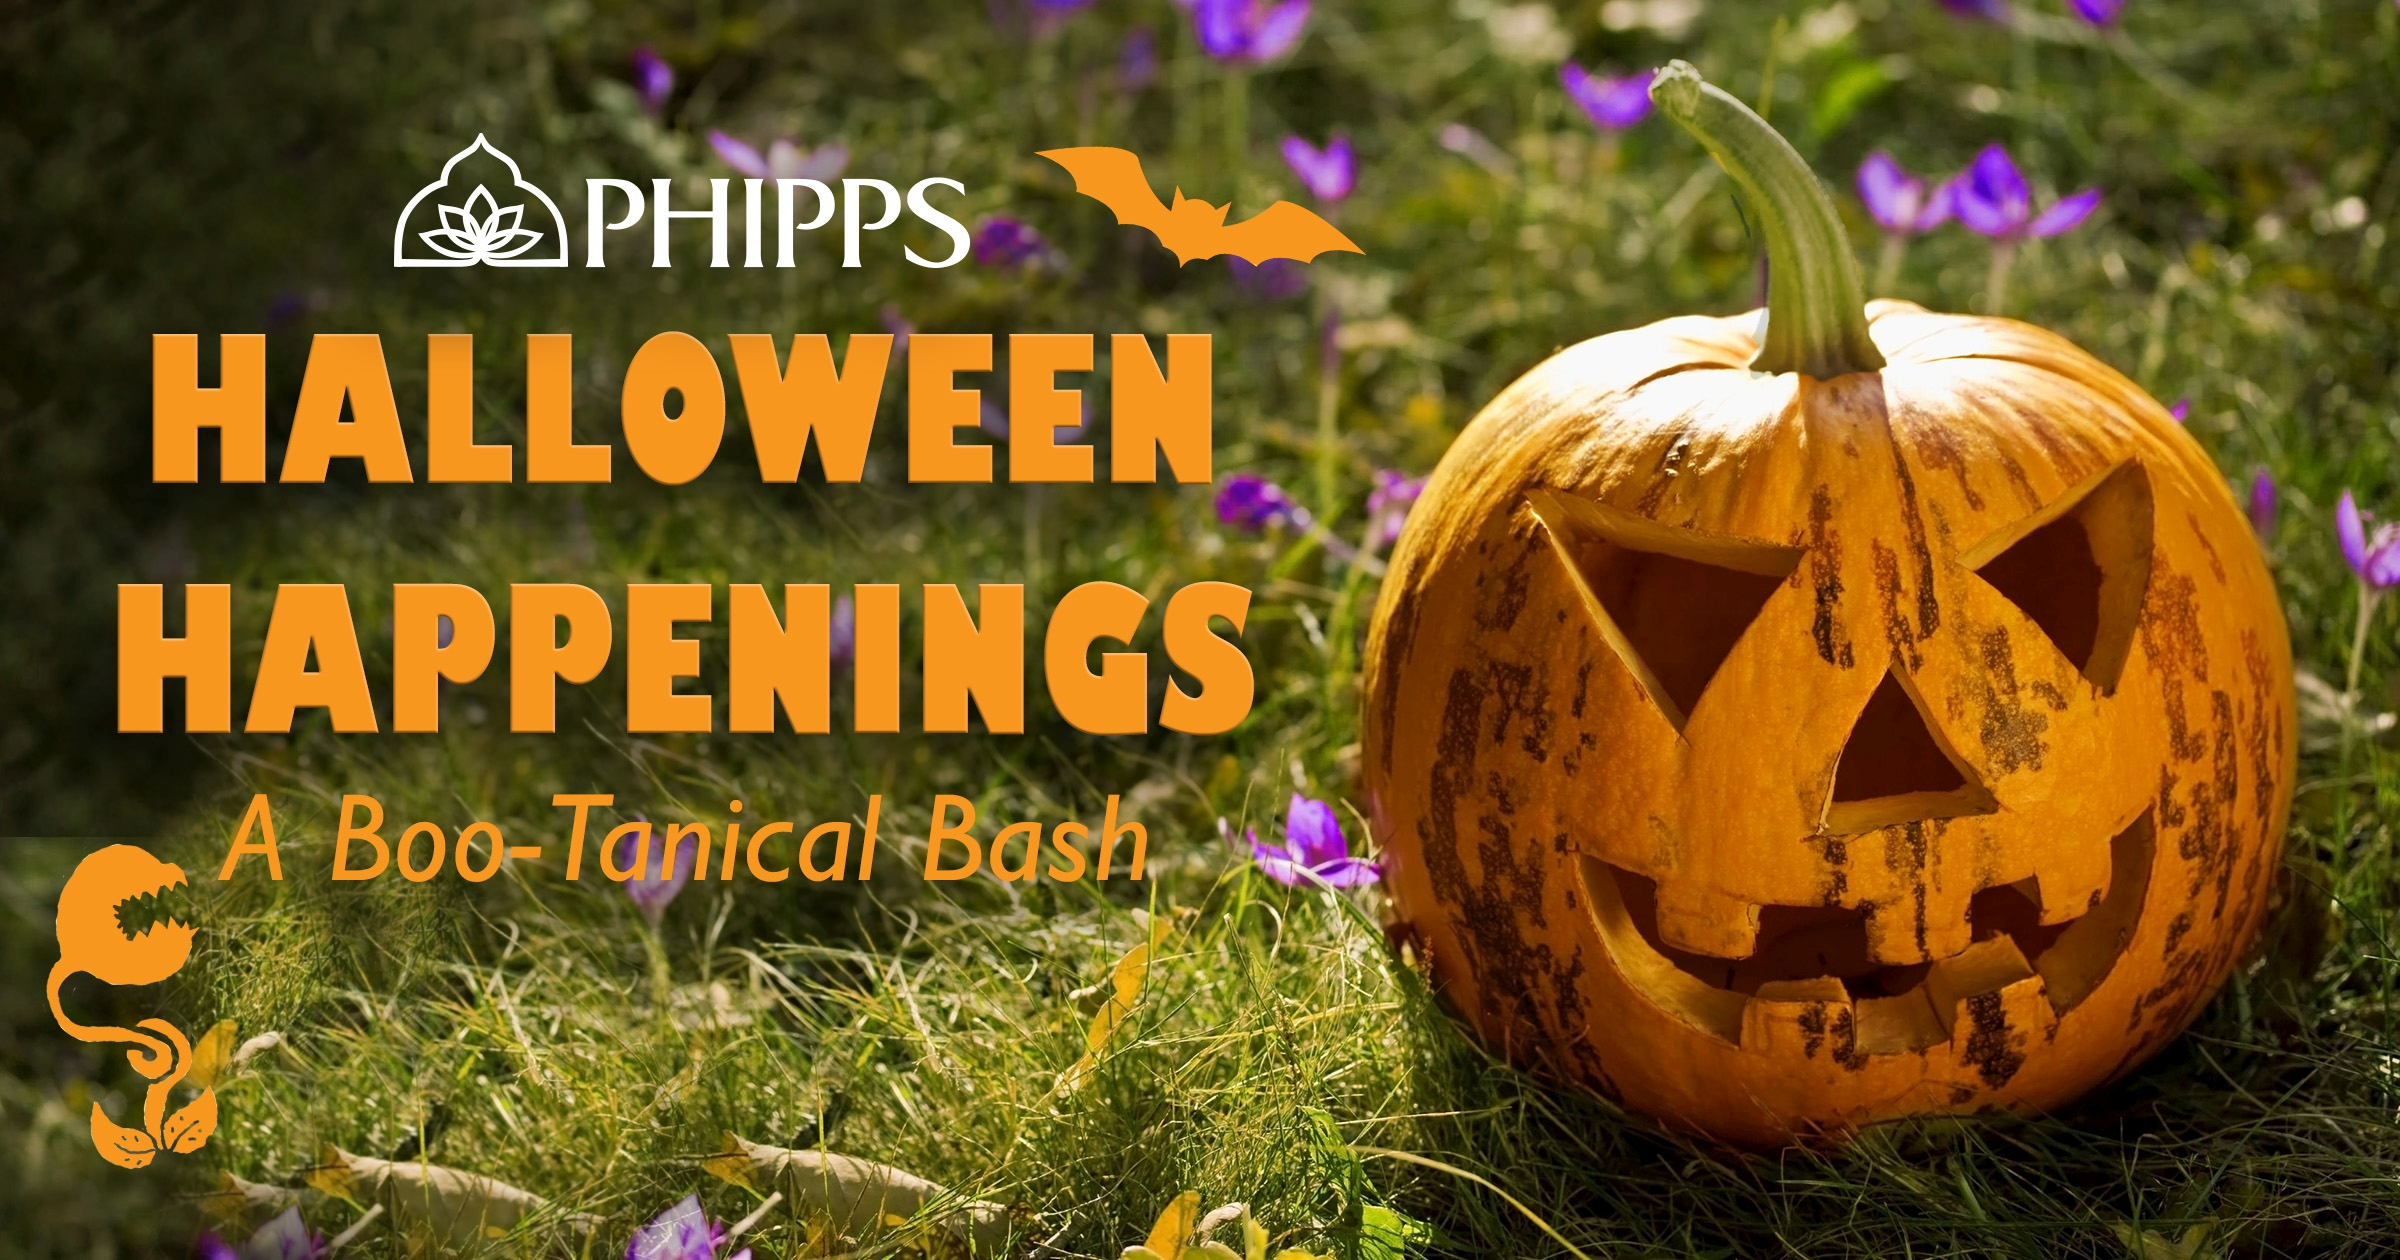 halloween happenings | phipps conservatory and botanical gardens